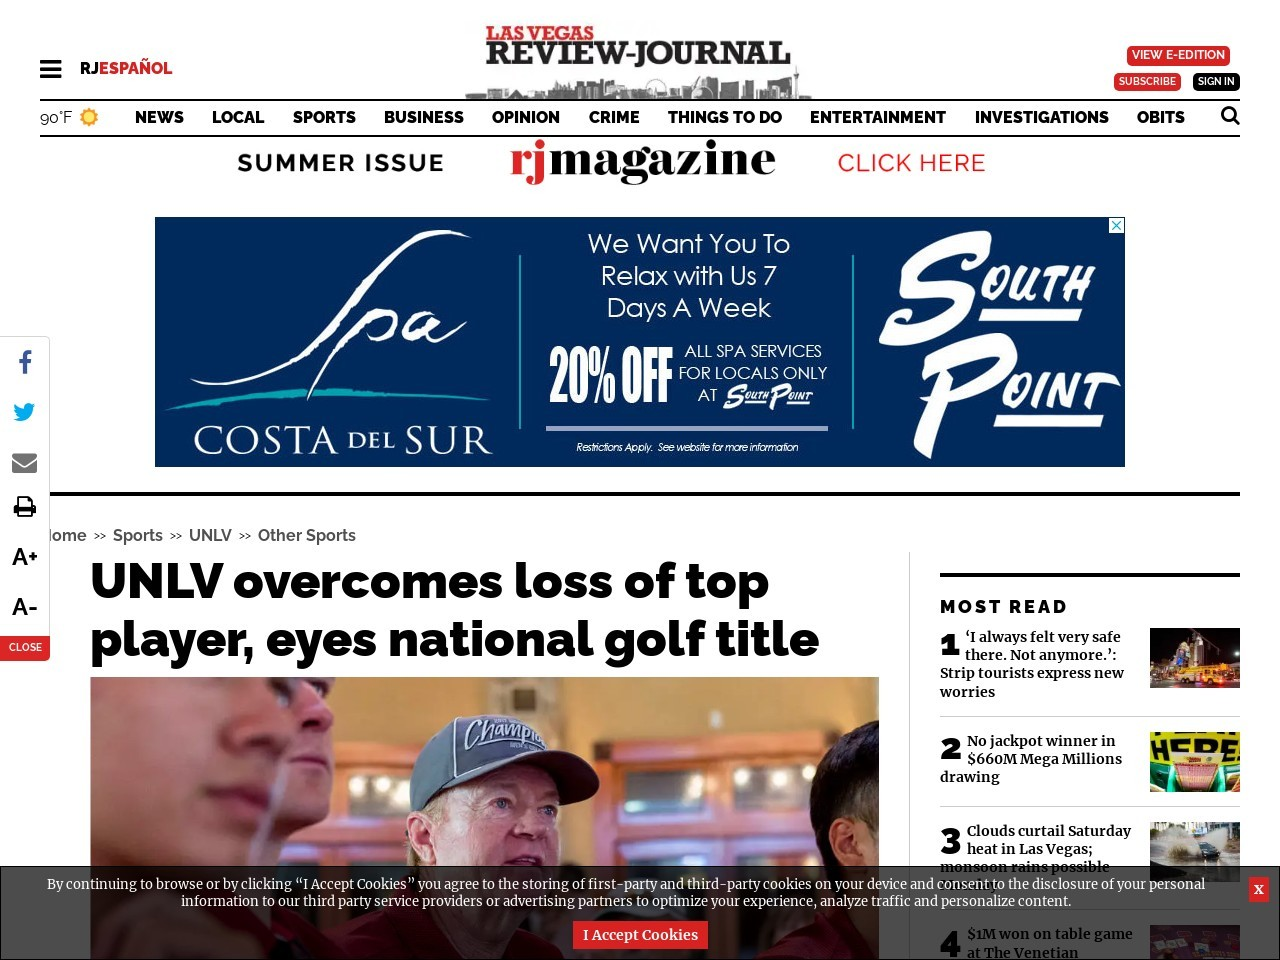 UNLV overcomes loss of top player, eyes national golf title